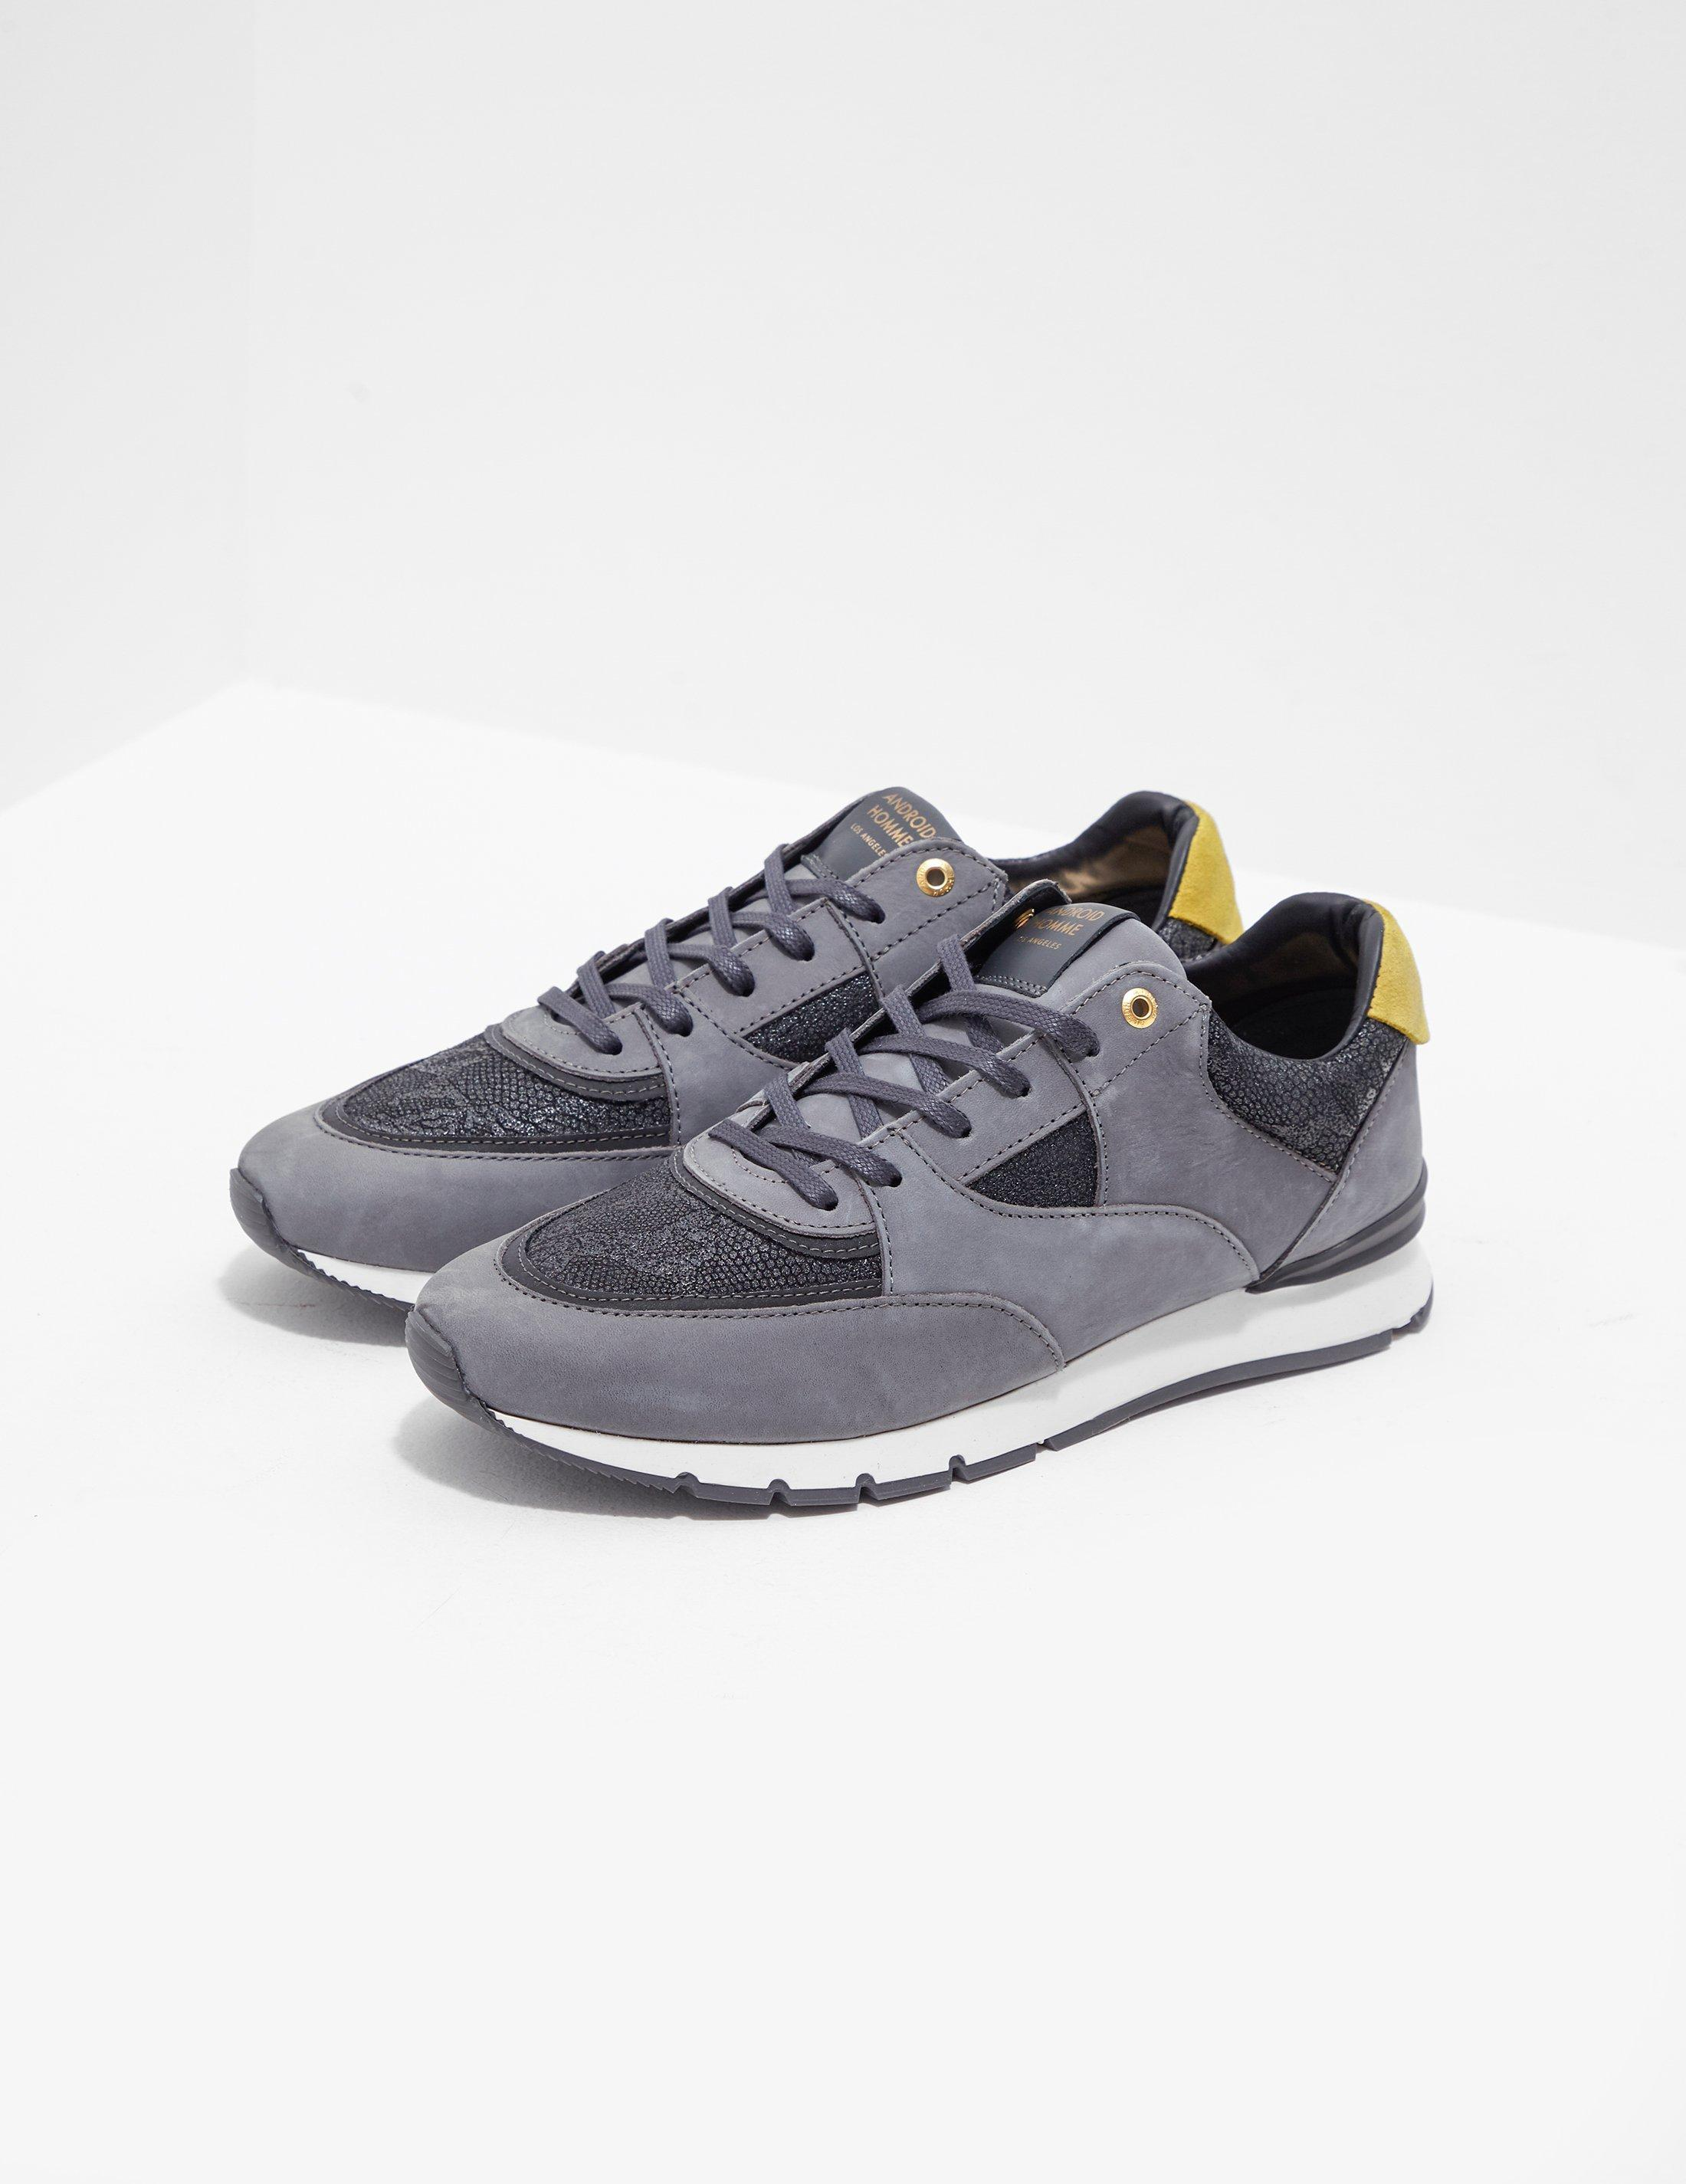 0ab717ad342 Lyst android homme mens belter python grey in gray for men jpg 2200x2850  Mens python andord